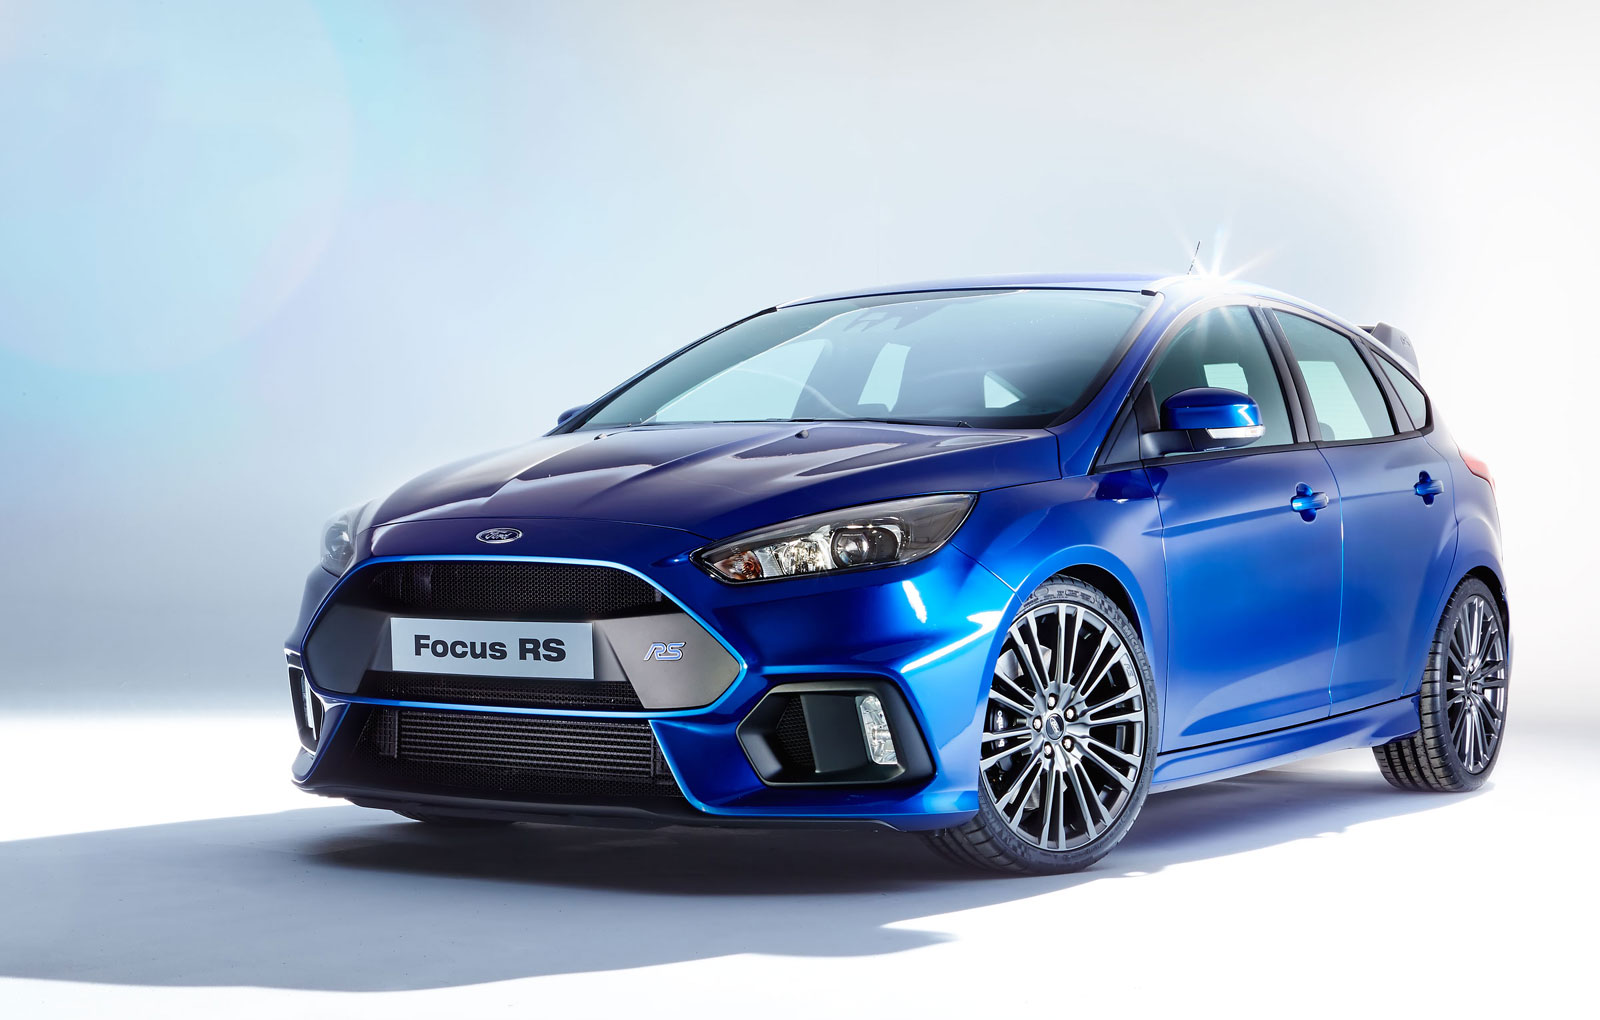 rs specs focus motoring price cars co news ford za